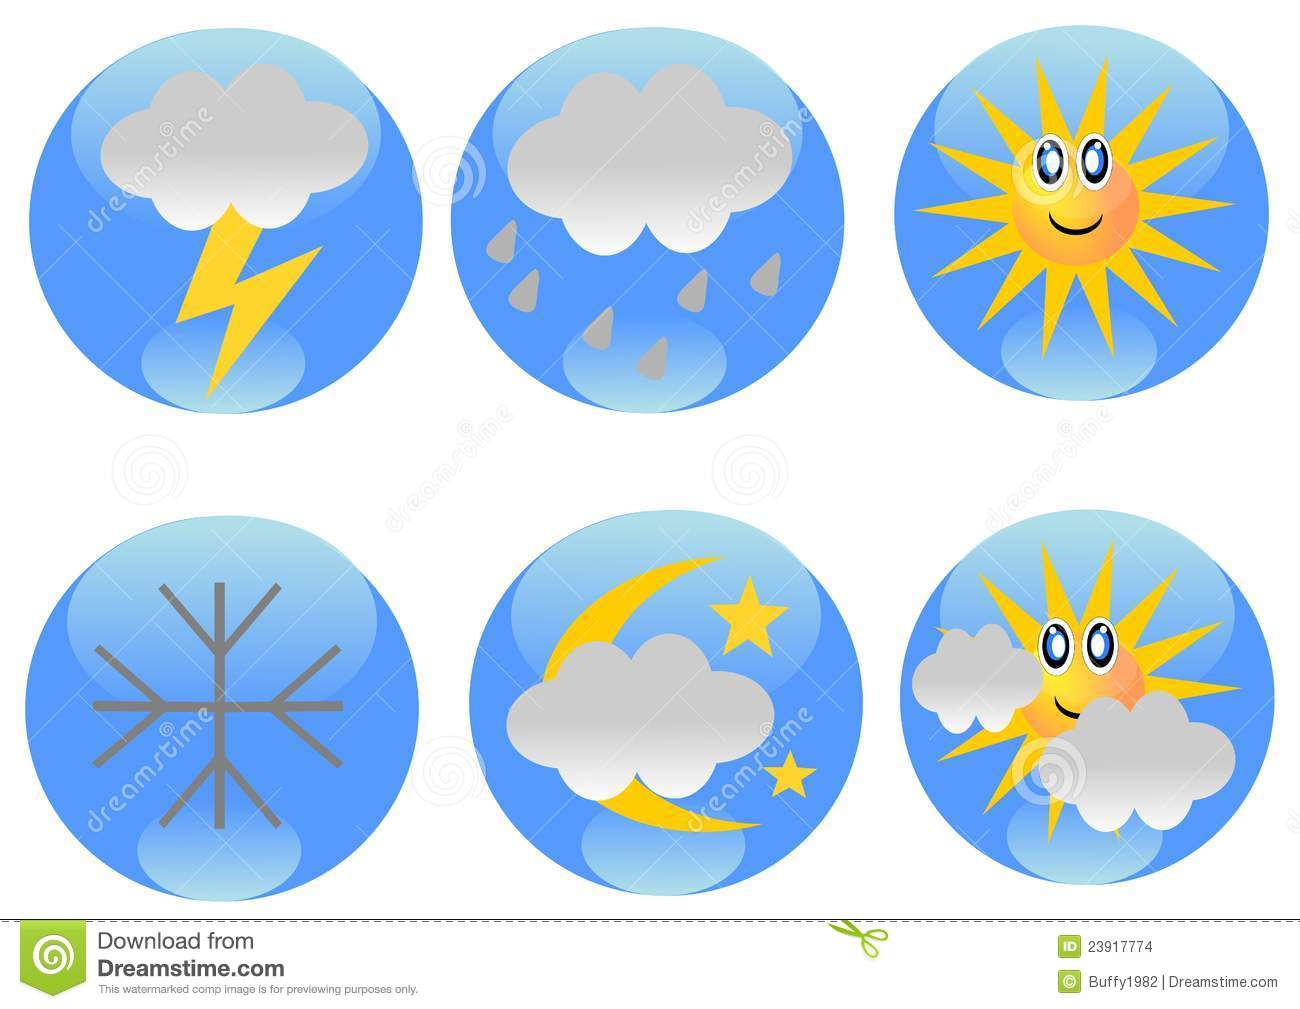 Weather conditions clipart jpg royalty free download Weather forecast icons | Clipart Panda - Free Clipart Images jpg royalty free download